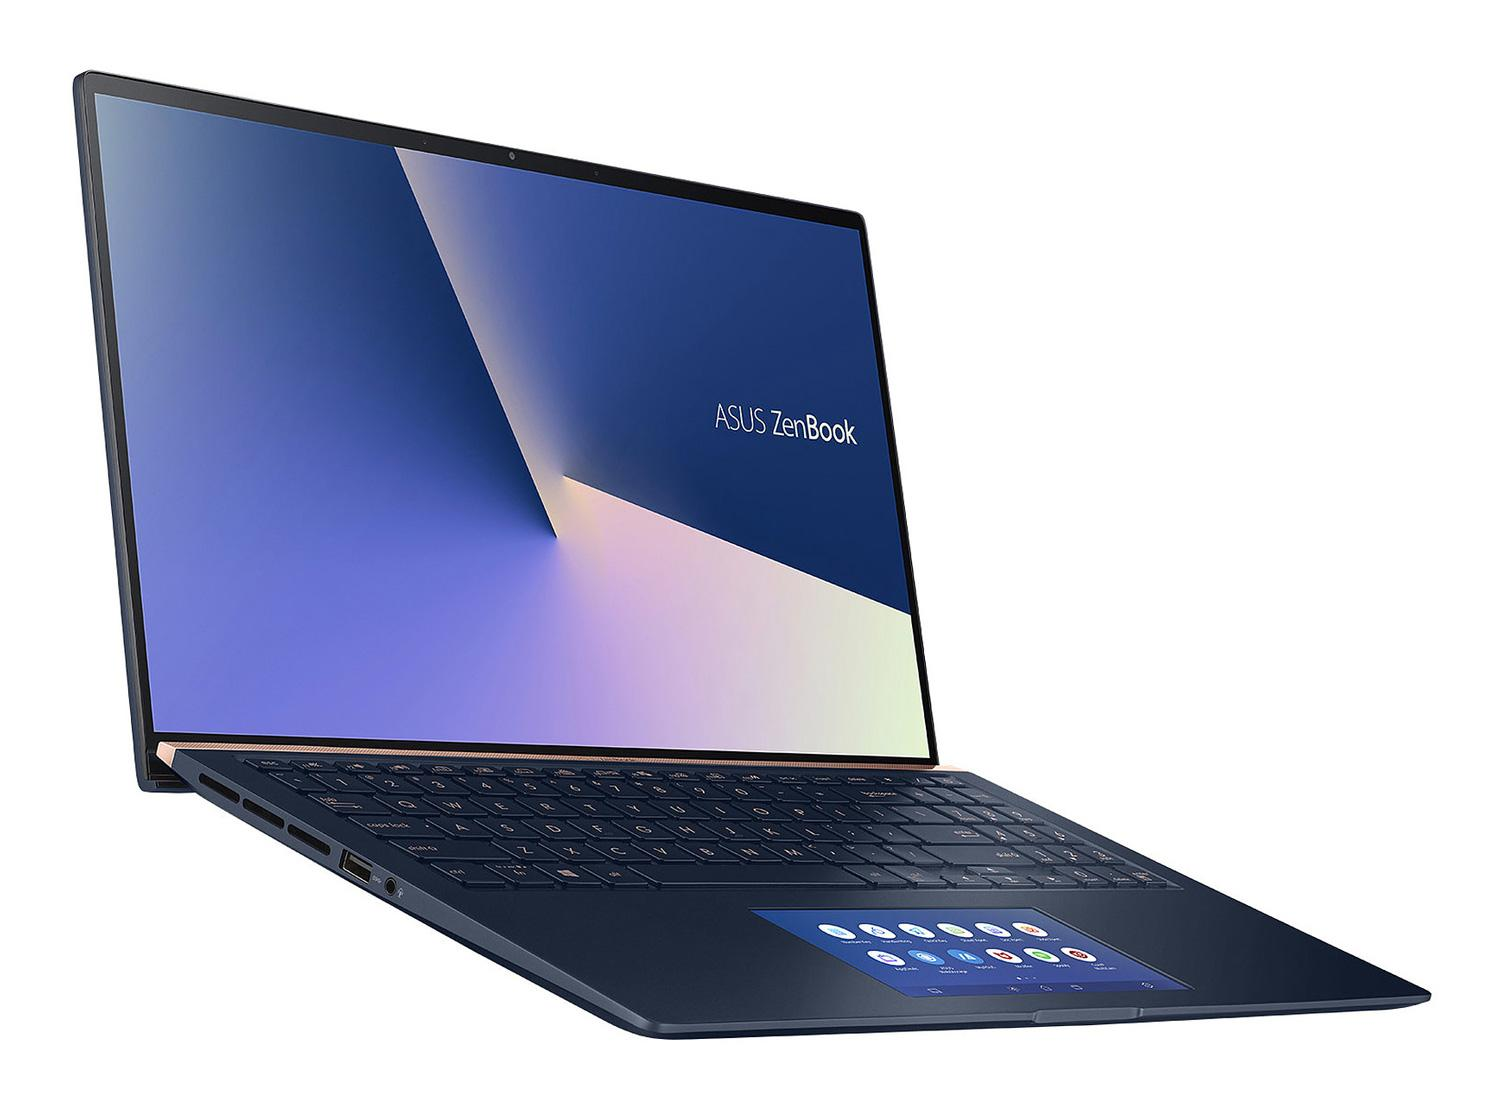 Ordinateur portable Asus ZenBook UX534FT-A9011T Bleu - GTX 1650 Max-Q, SSD 1 To, ScreenPad - photo 3